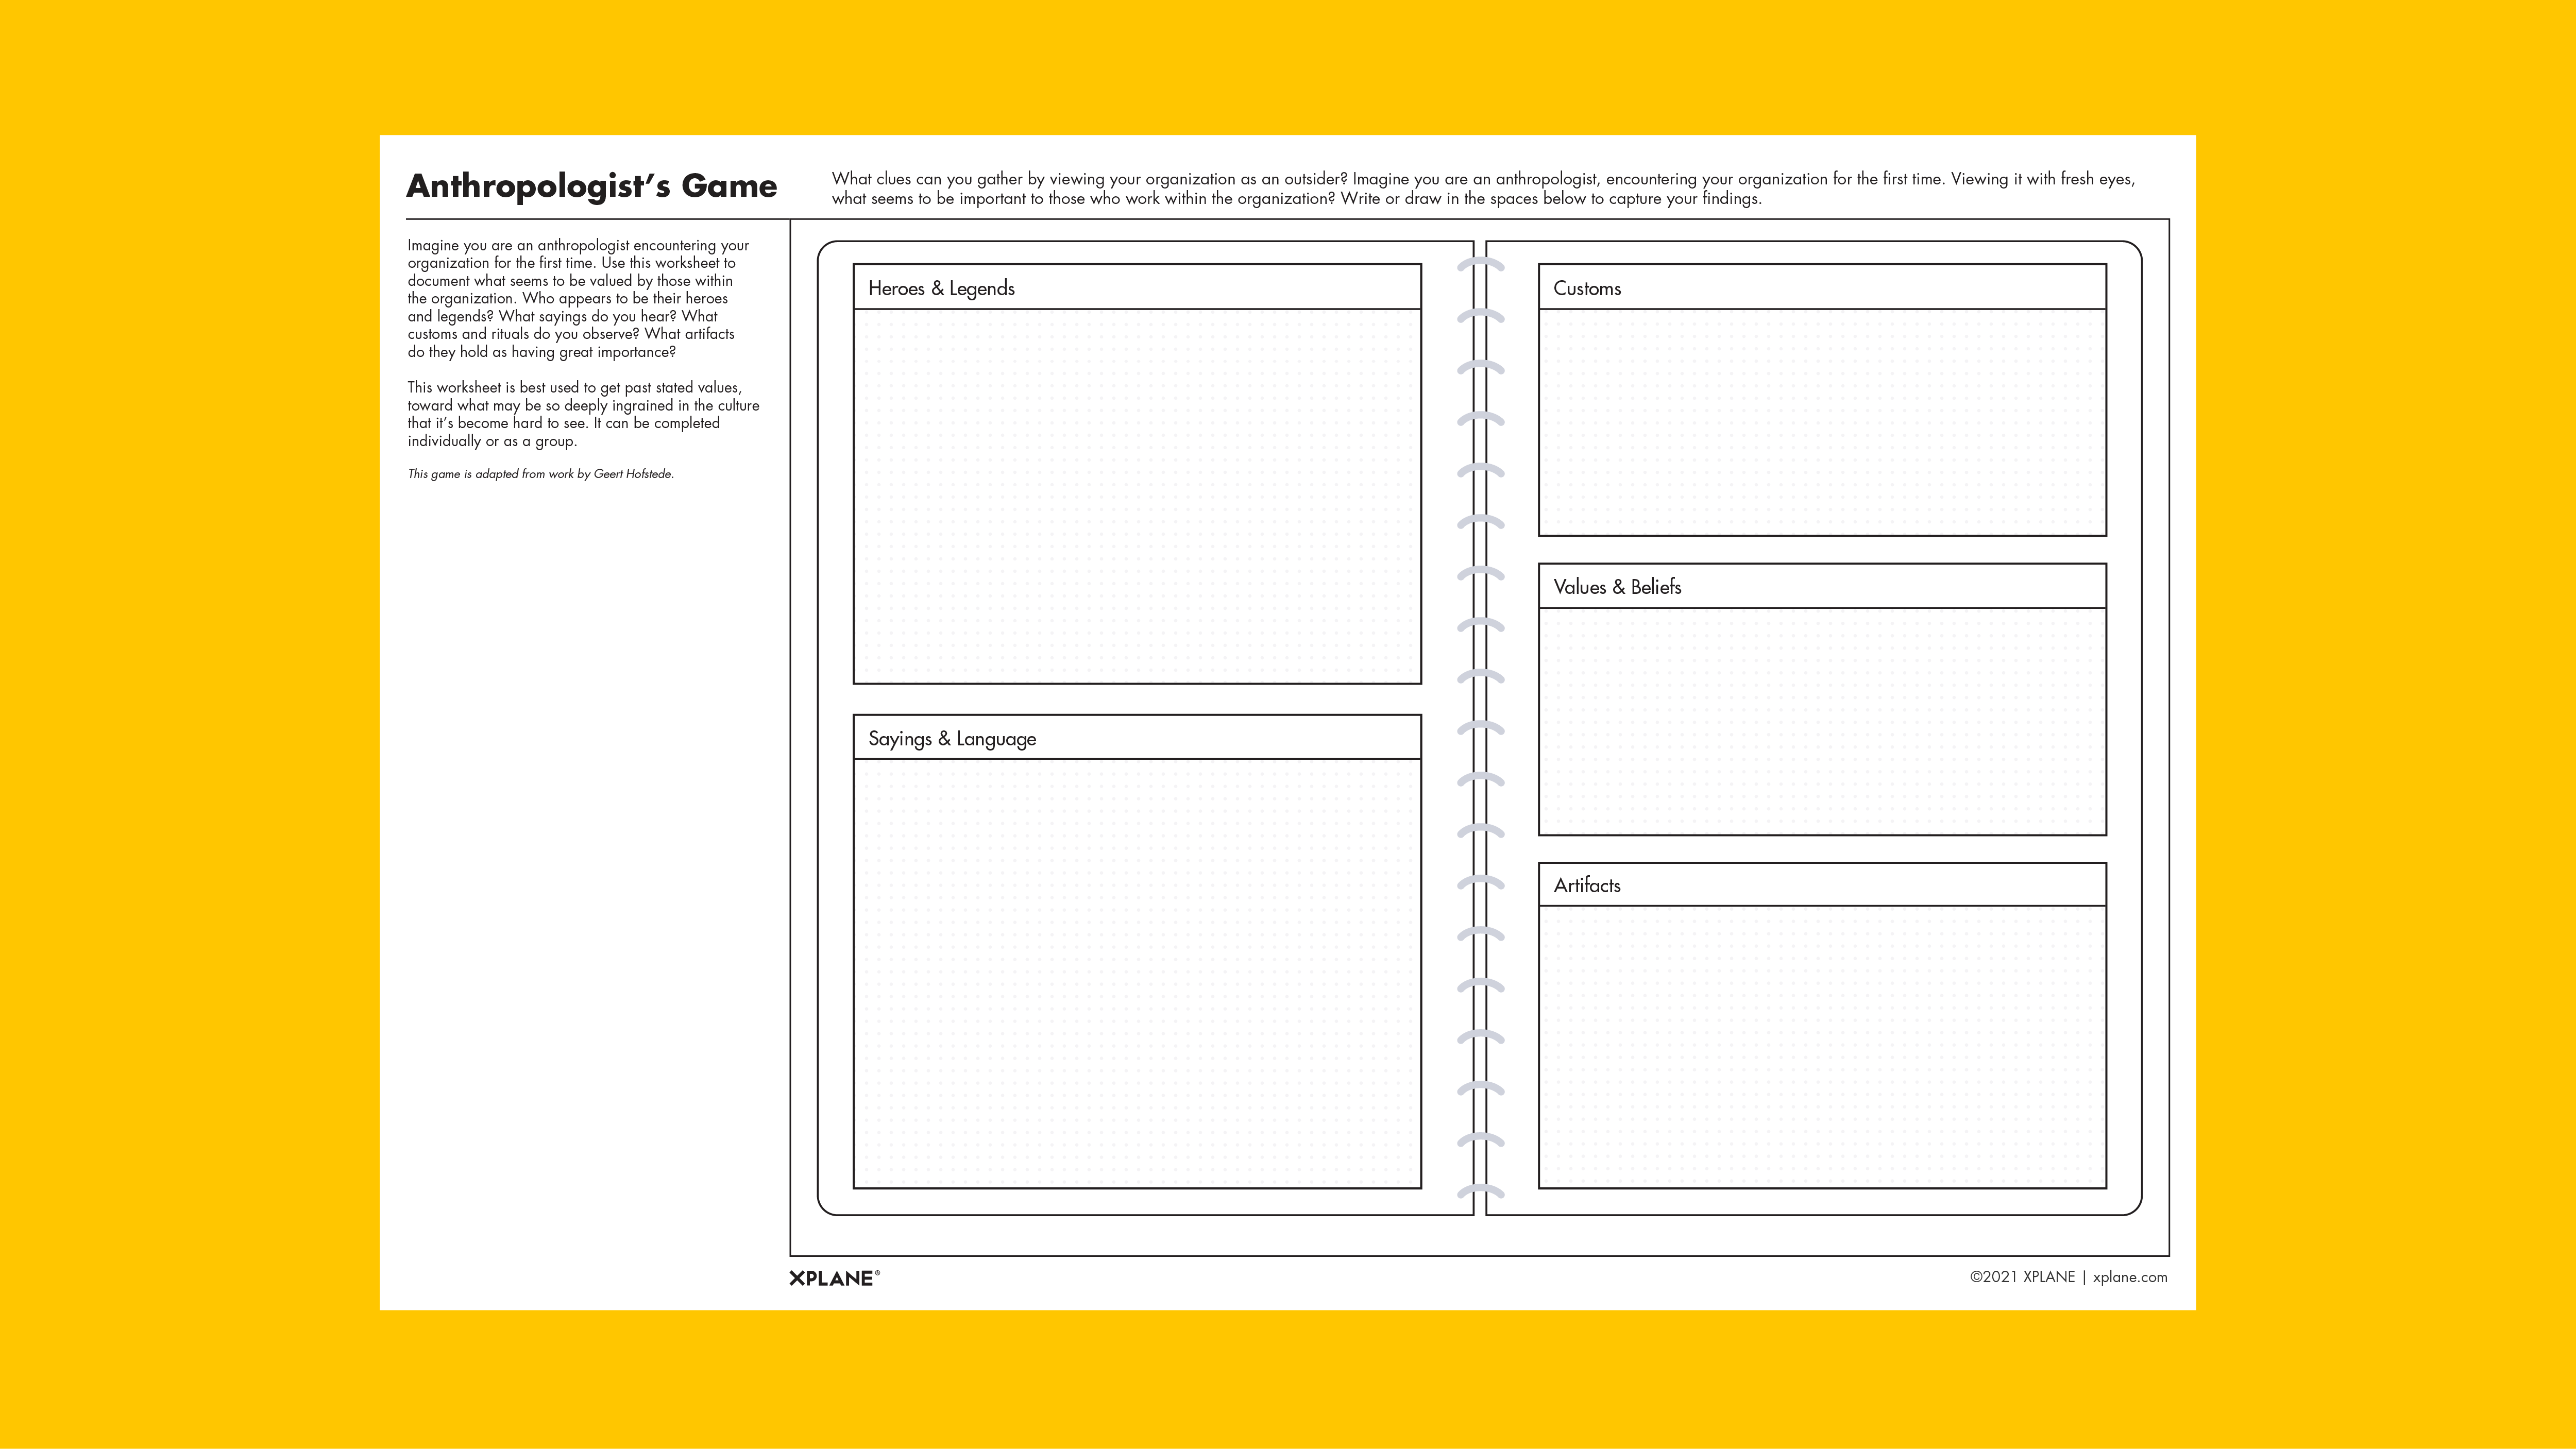 Anthropologist's Game worksheet against yellow background